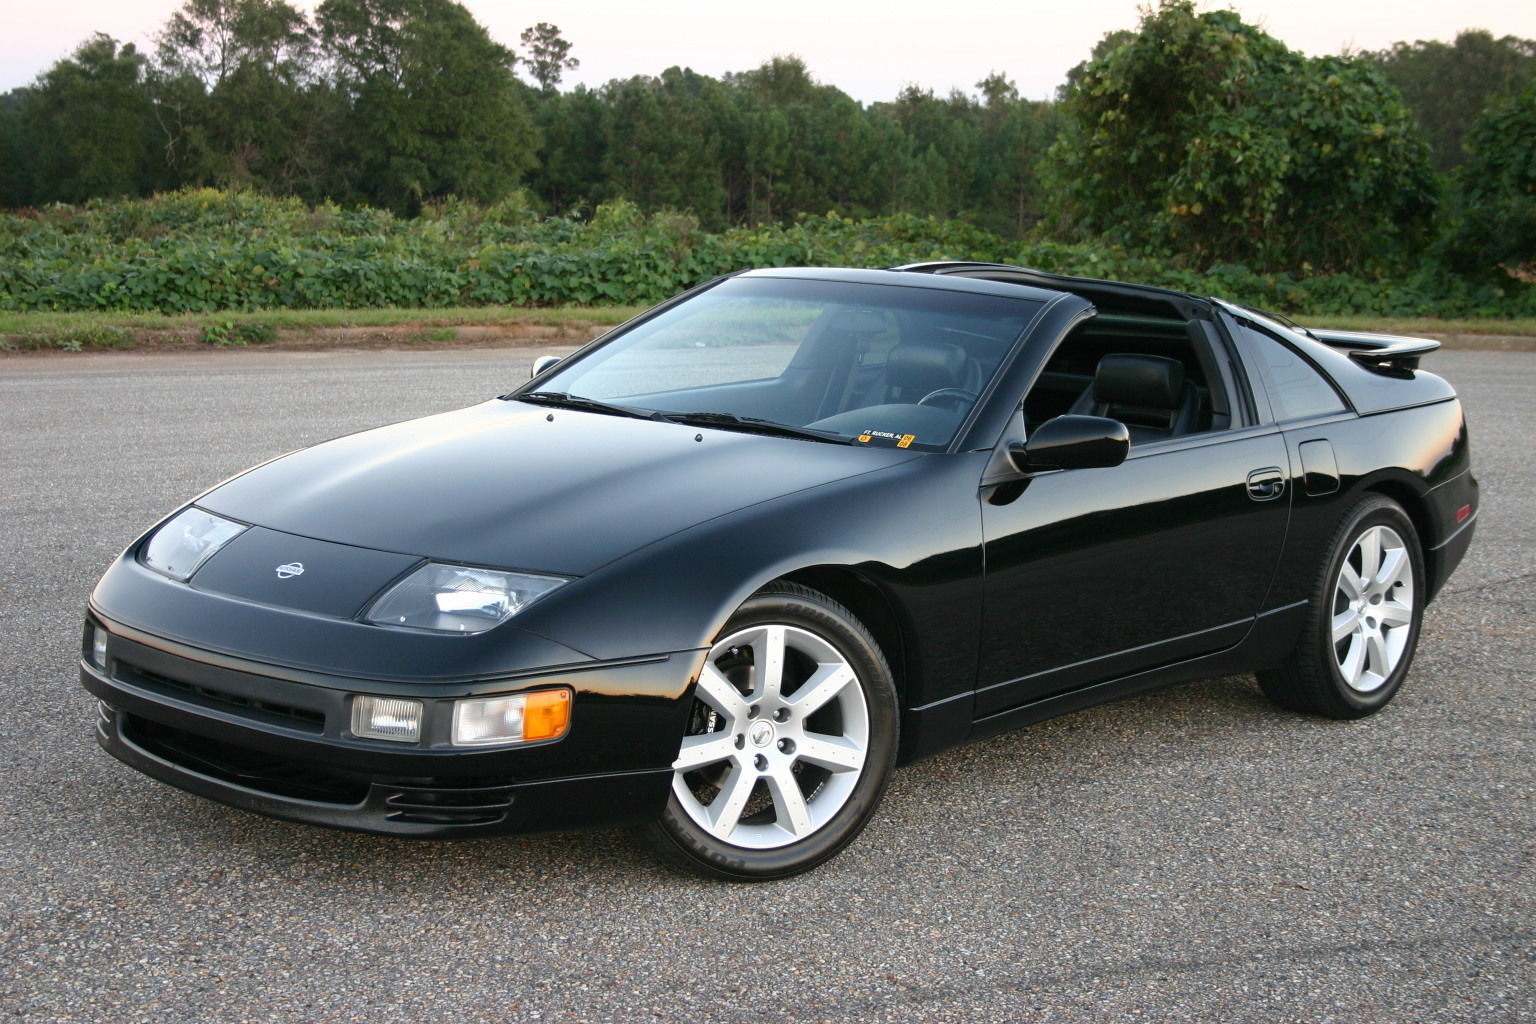 1994 nissan 300zx twin turbo collectors show car classic nissan 300zx 1994 for sale. Black Bedroom Furniture Sets. Home Design Ideas